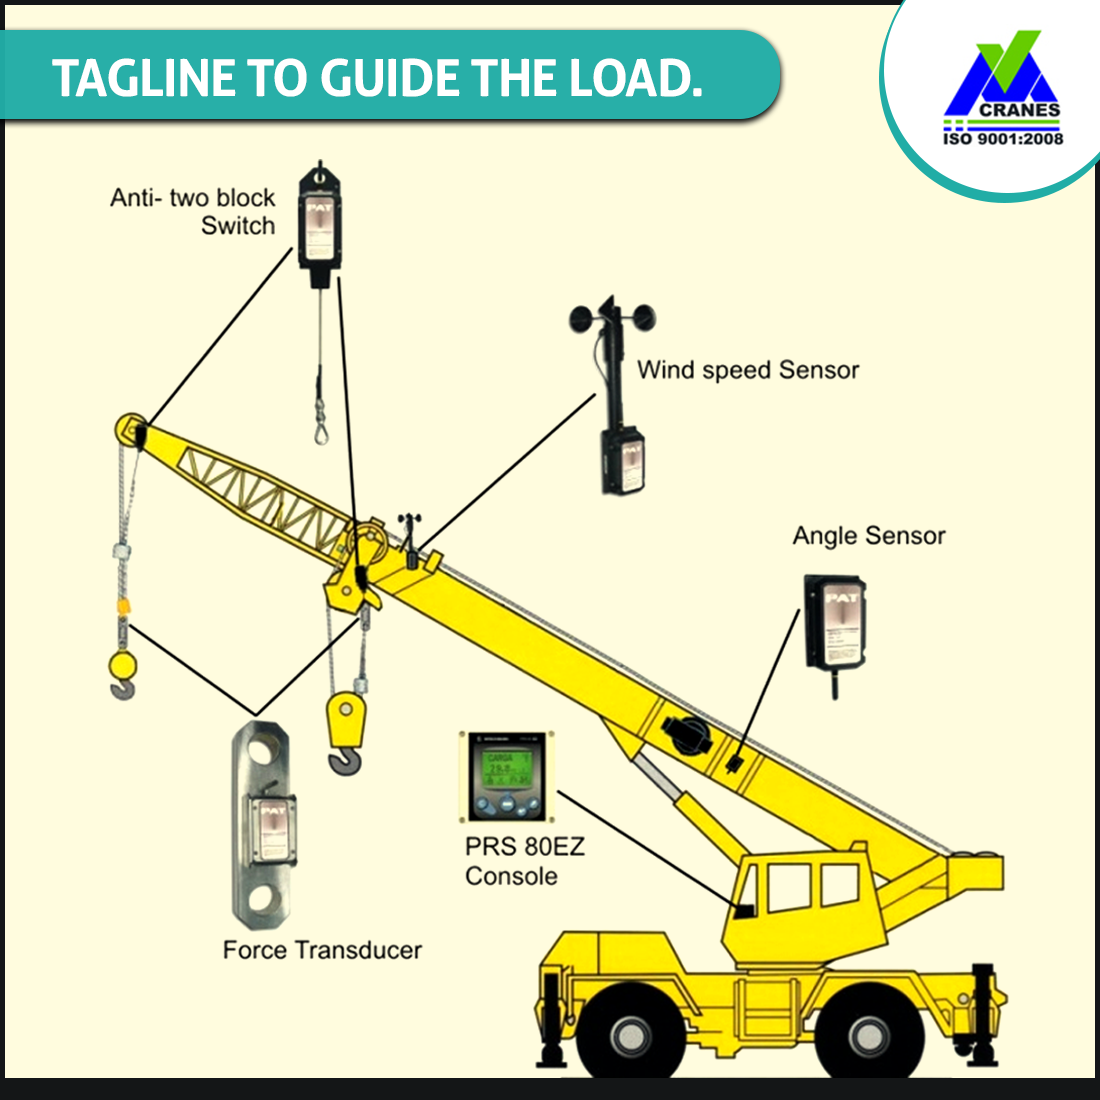 usage of tagline to guide the load load to be handled smoothly cranessafety safetyguide motivation vmecranes vmengineers [ 1100 x 1100 Pixel ]